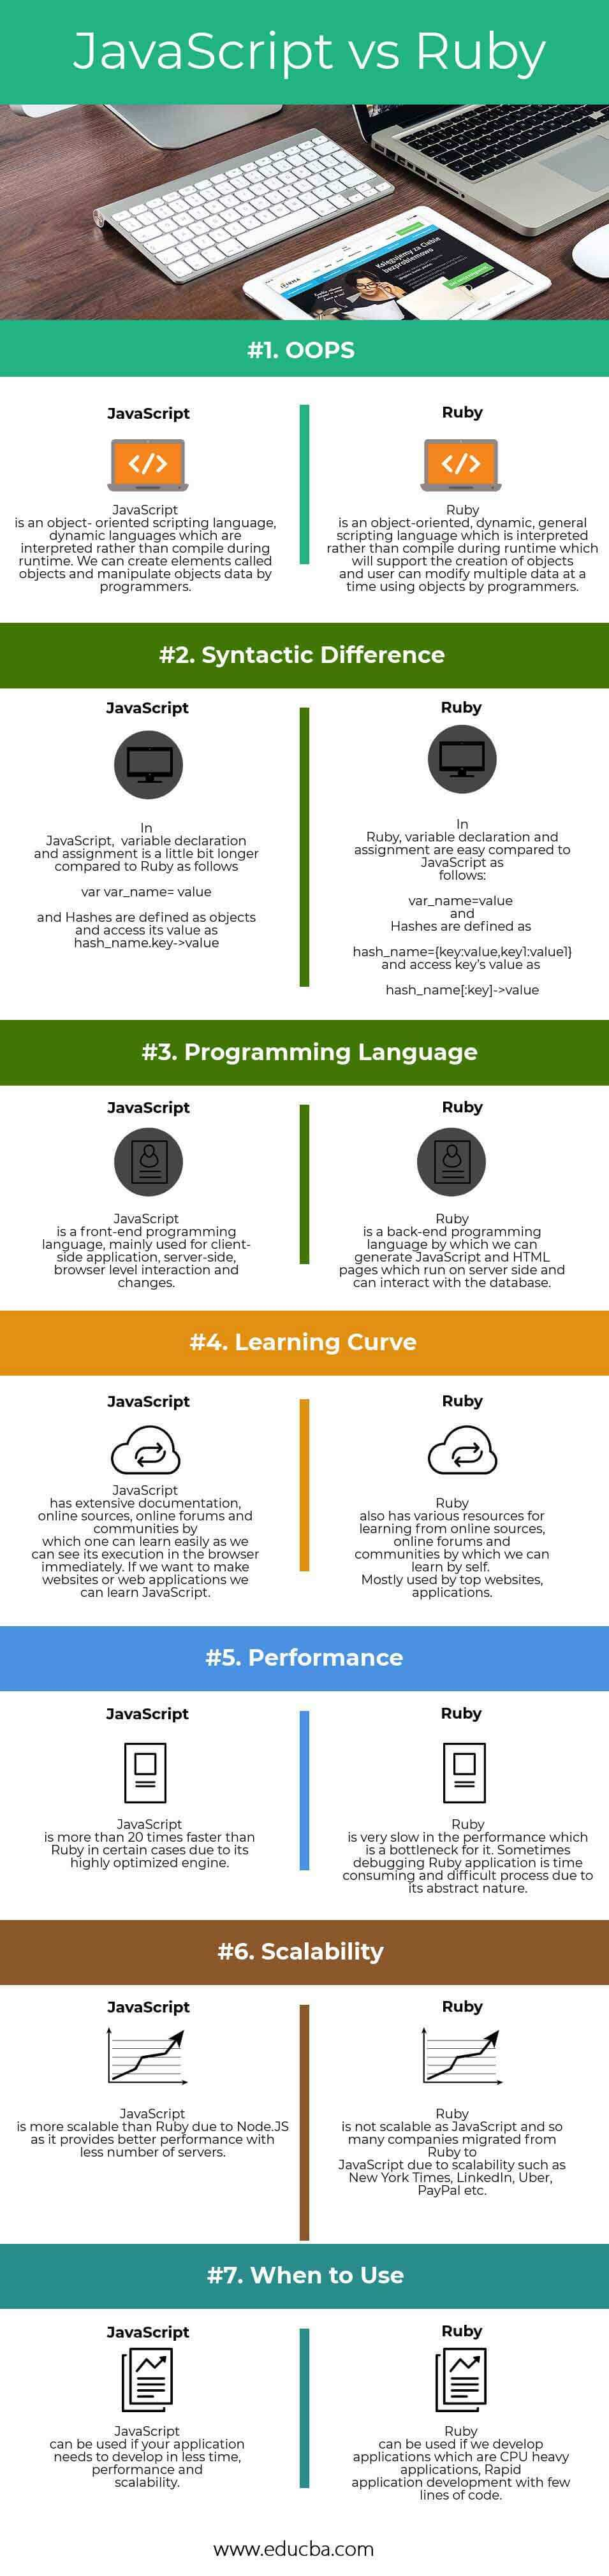 JavaScript vs Ruby - - Find Out The 7 Useful Comparisons